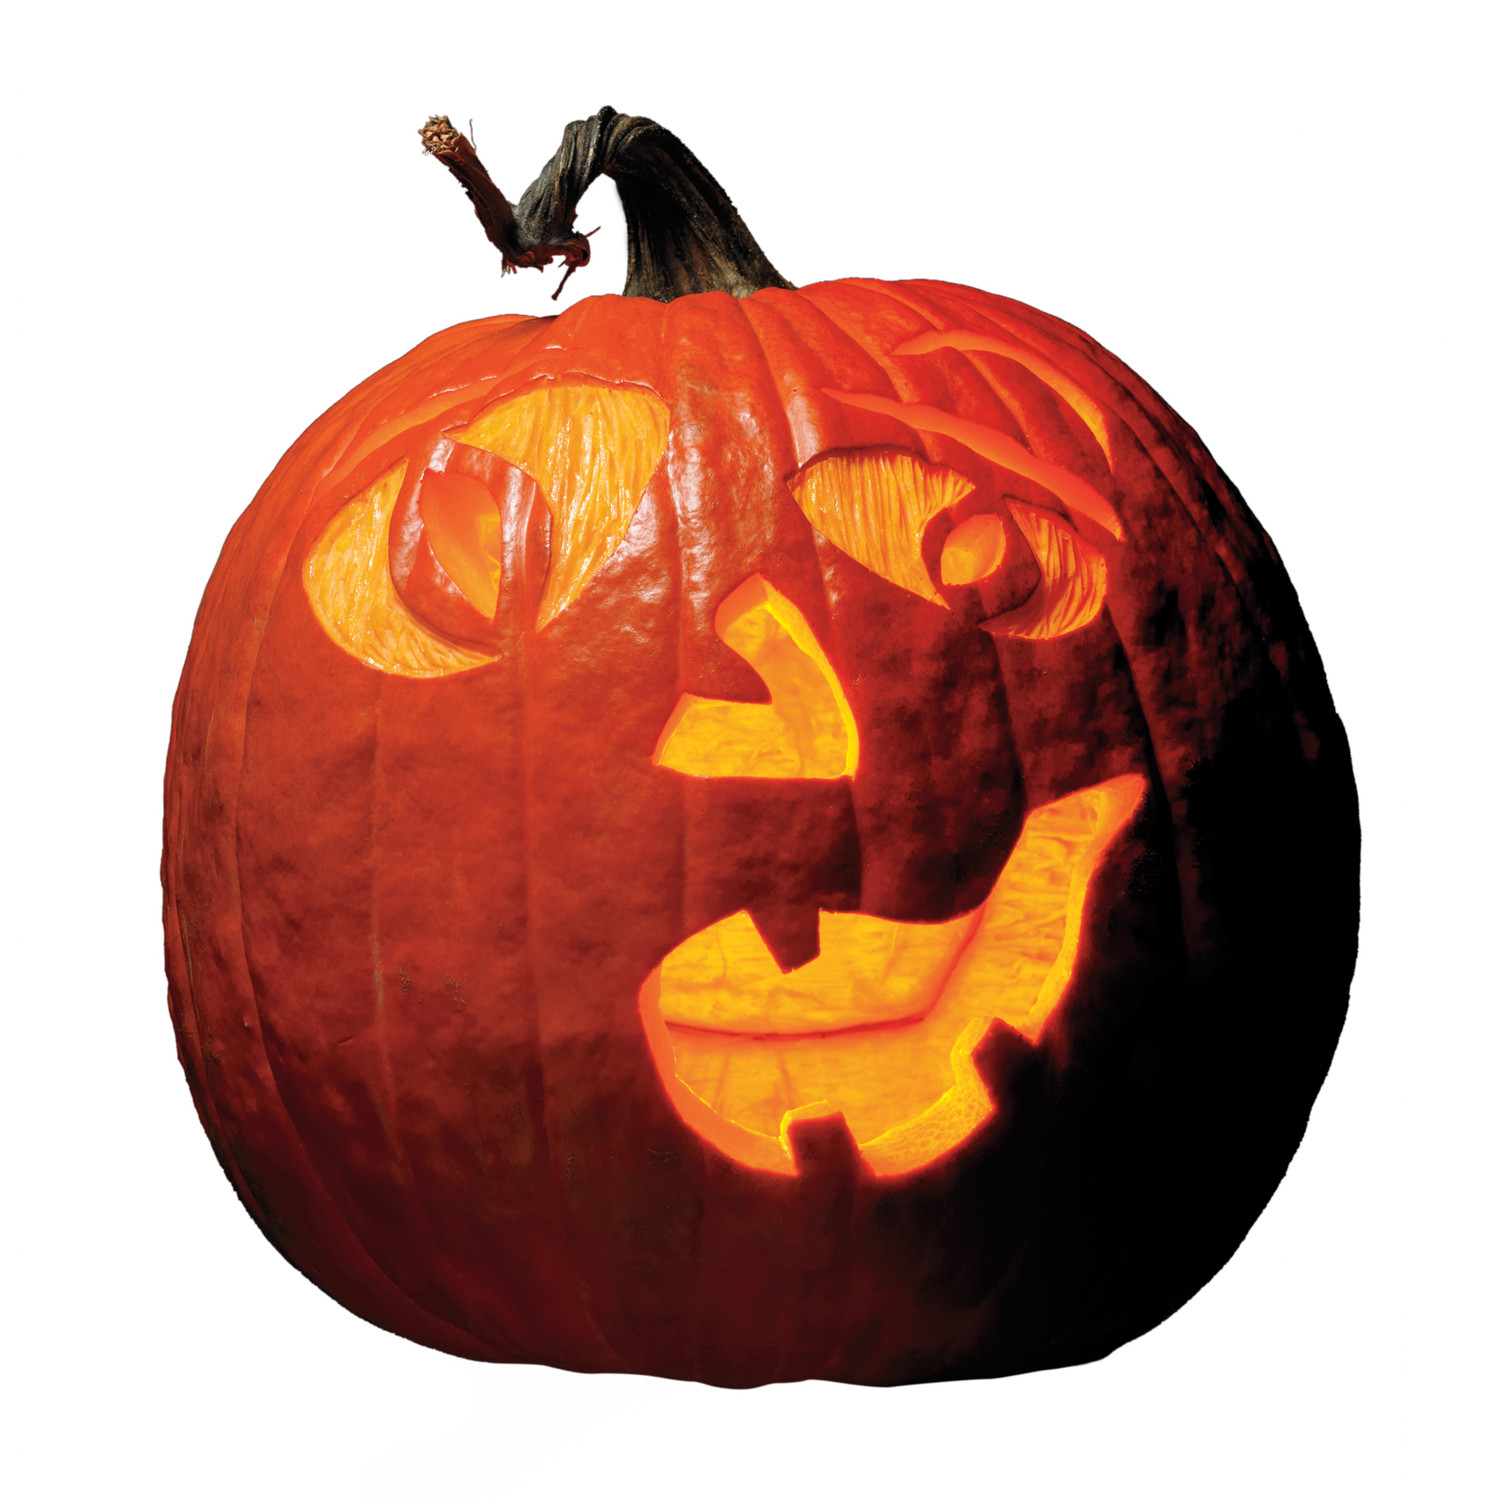 1500x1500 Pumpkin Carving And Decorating Ideas Martha Stewart